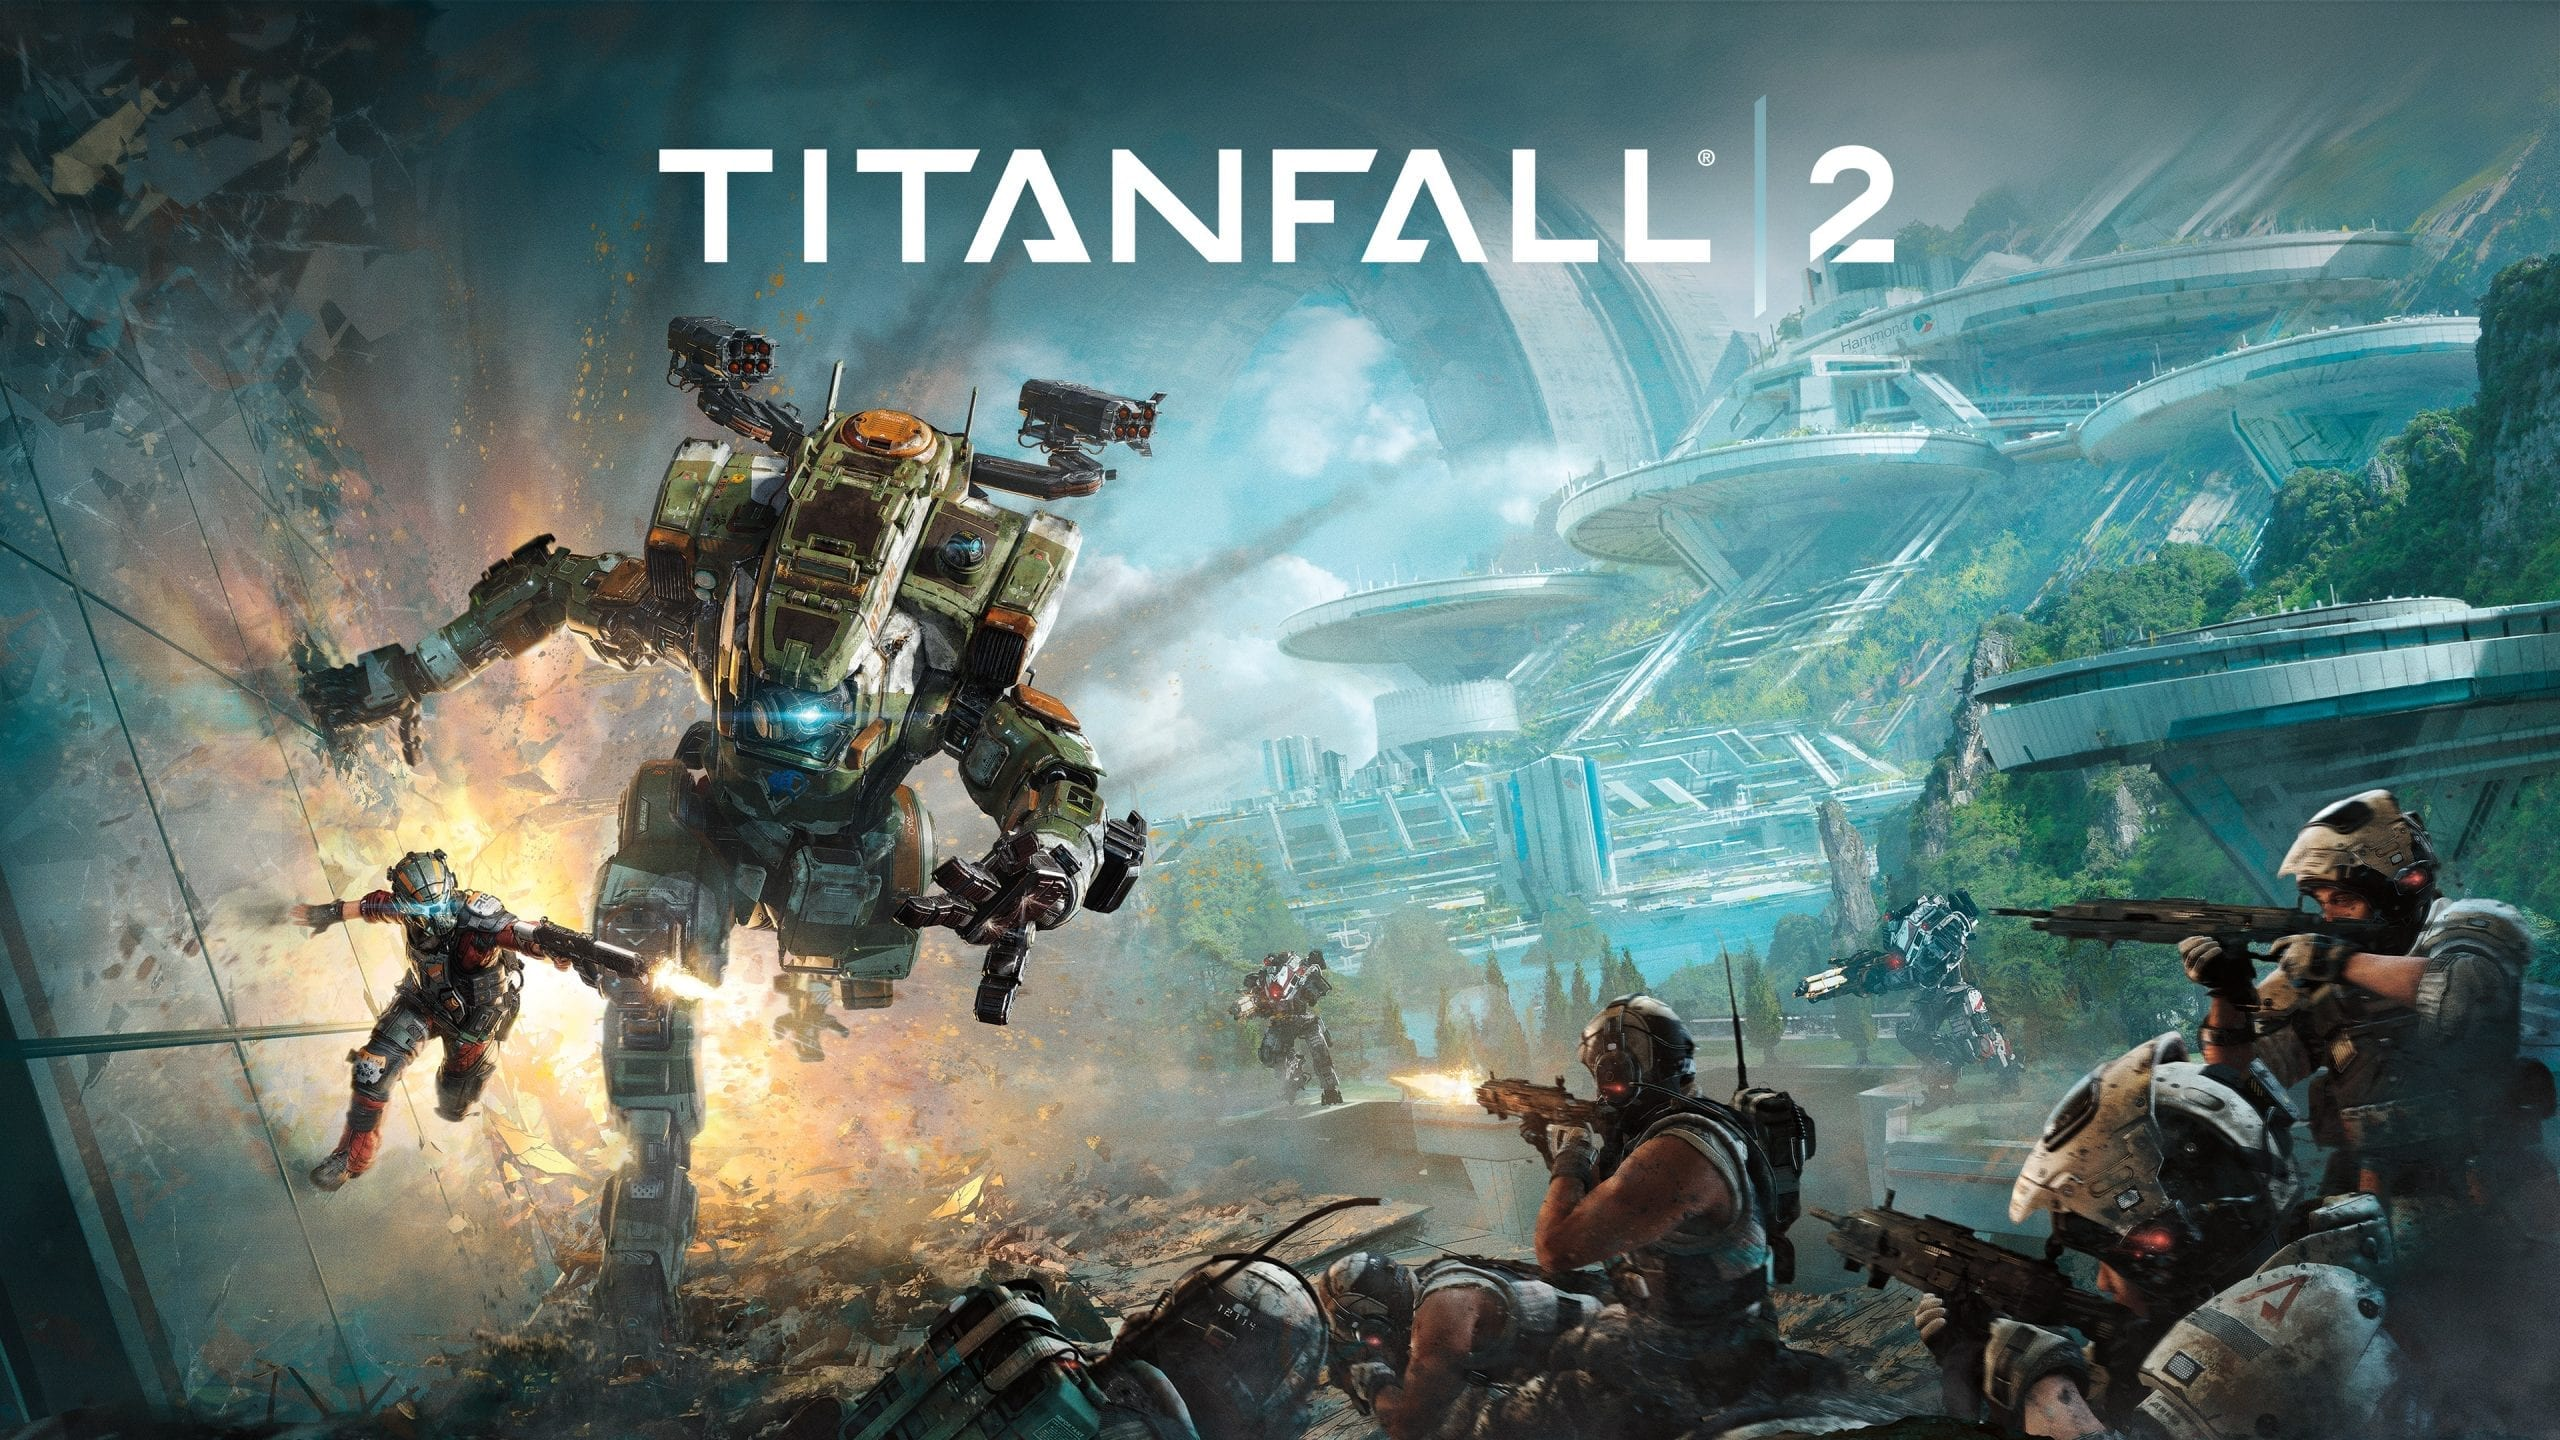 Why Is Everyone Playing Titanfall 2 Again?